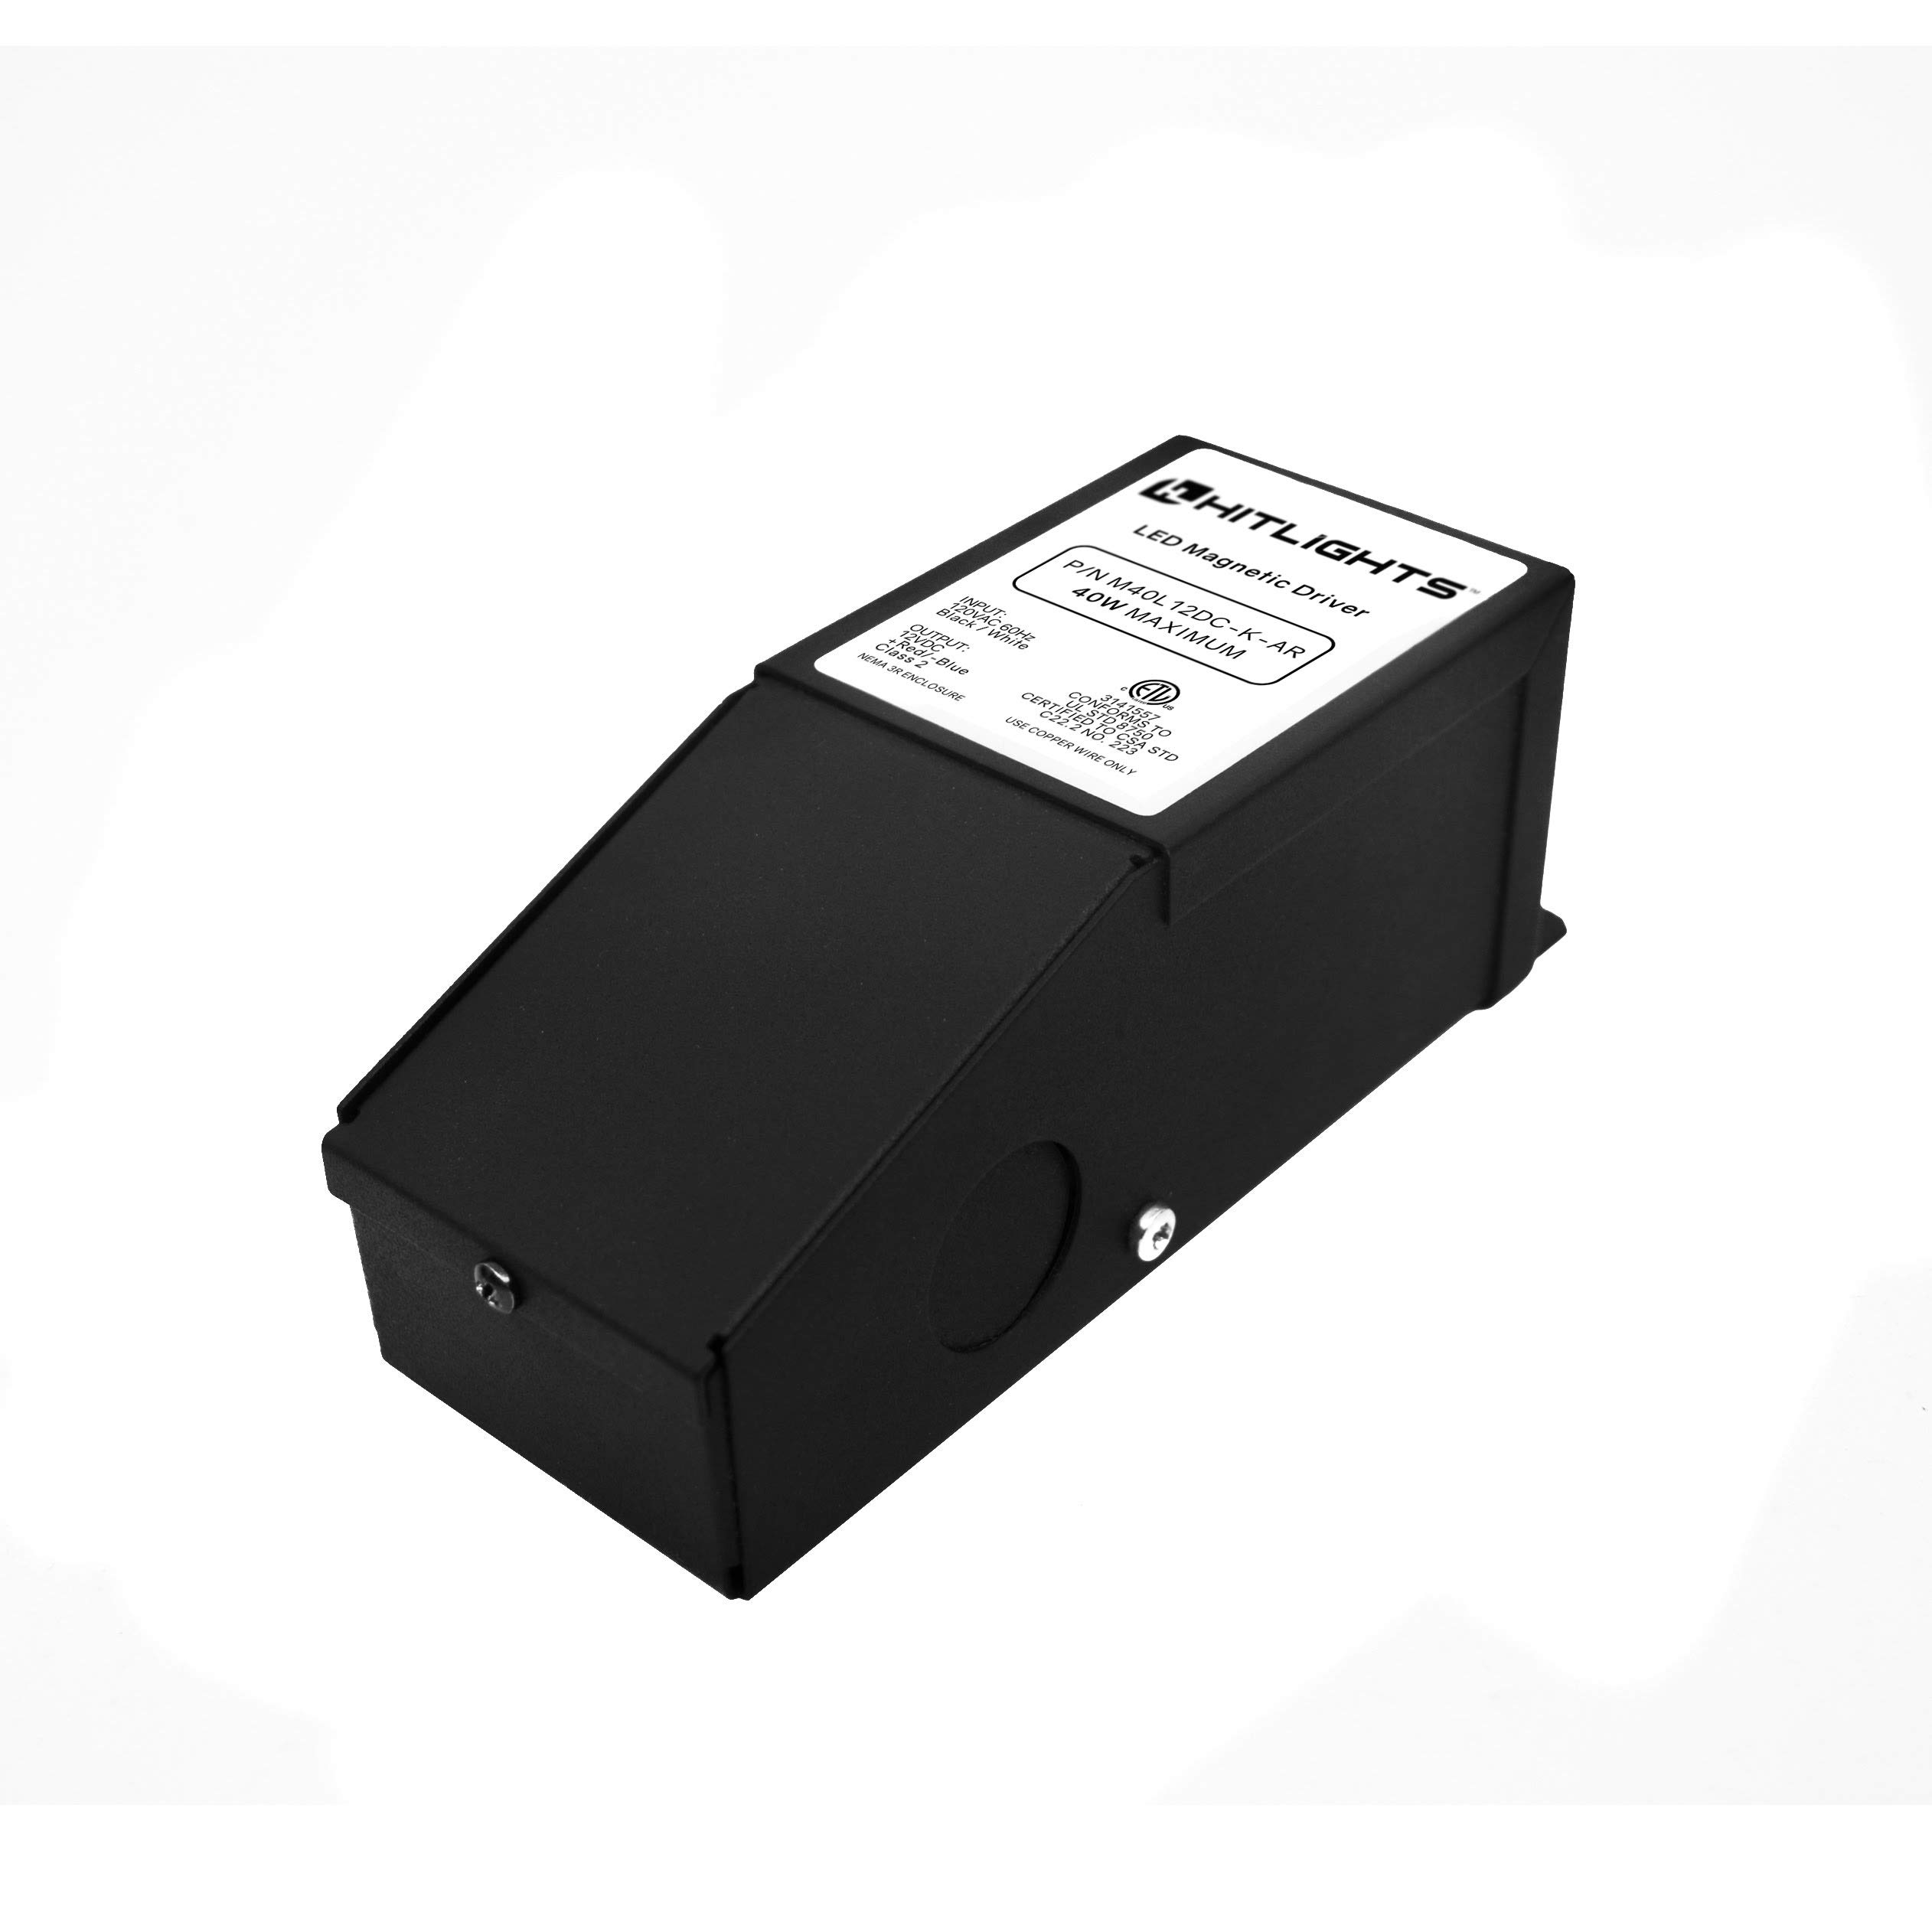 HitLights 40 Watt Dimmable Driver, Magnetic, for LED Light Strips - 110V AC-24V DC Transformer. Made in the USA. Compatible with Lutron and Leviton